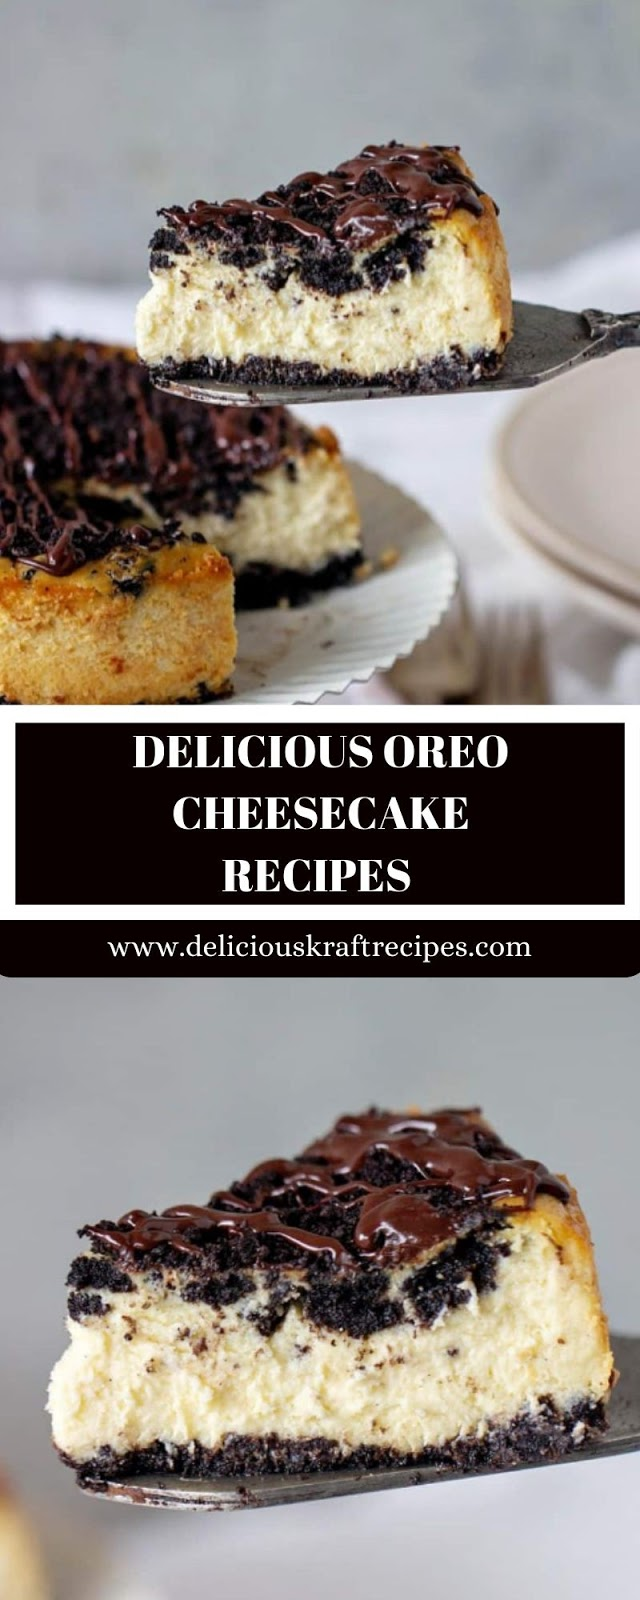 DELICIOUS OREO CHEESECAKE RECIPES